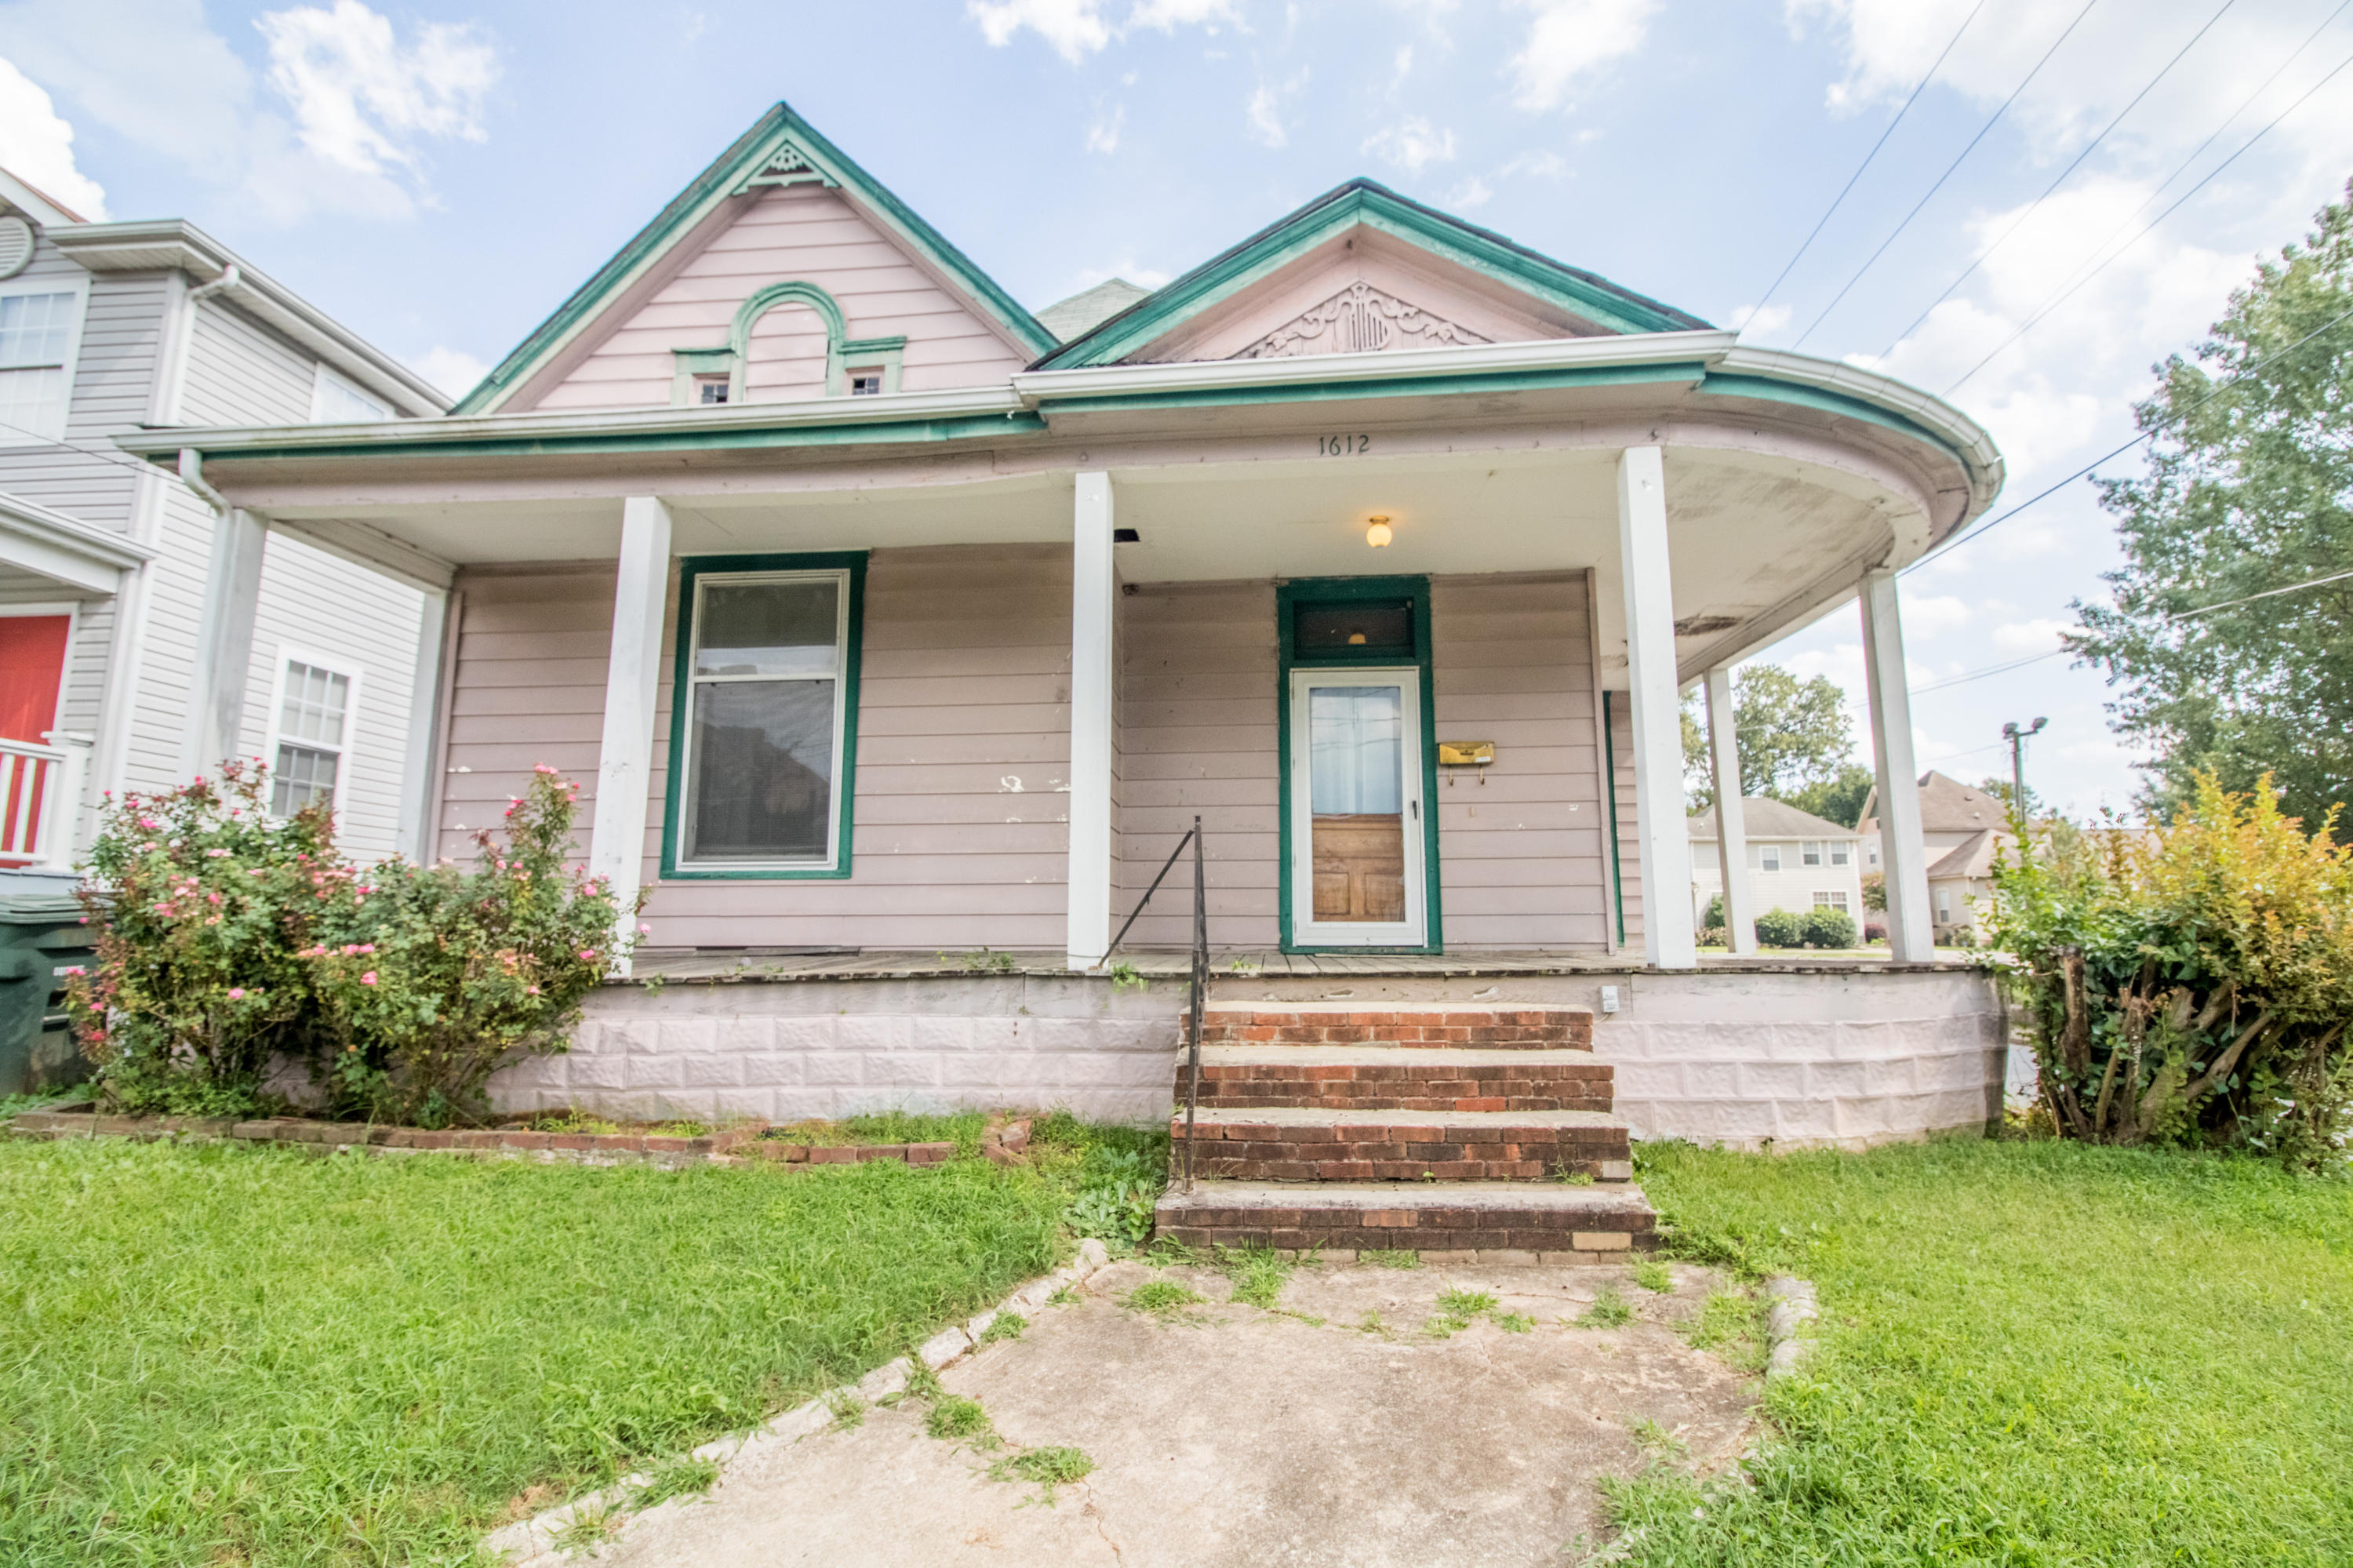 1612 Mitchell Ave, Chattanooga, TN 37408